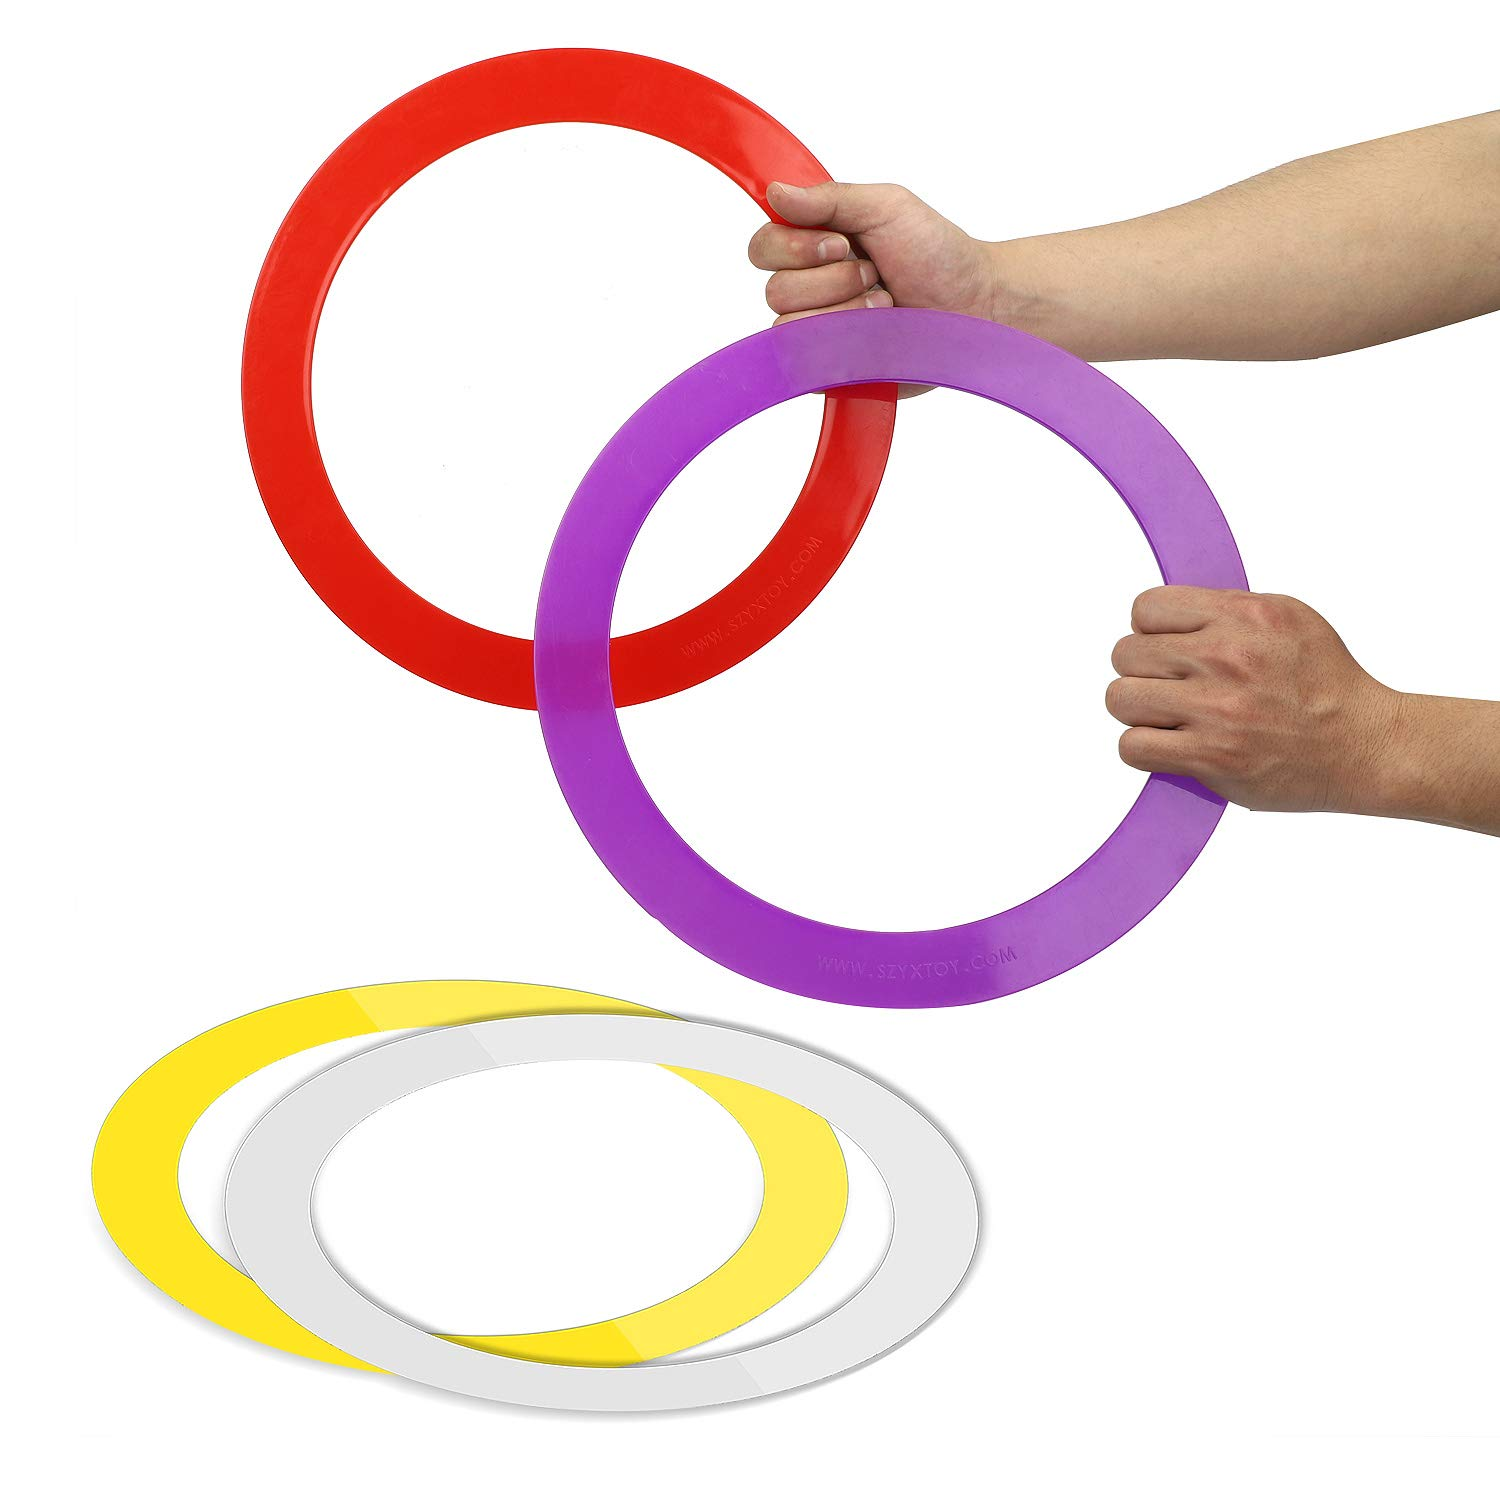 YuXing Juggling Rings (12.6'' 4.0 Ounce) Set of 4 for Beginners and Professionals, Red Yellow White Purple by YuXing TOY